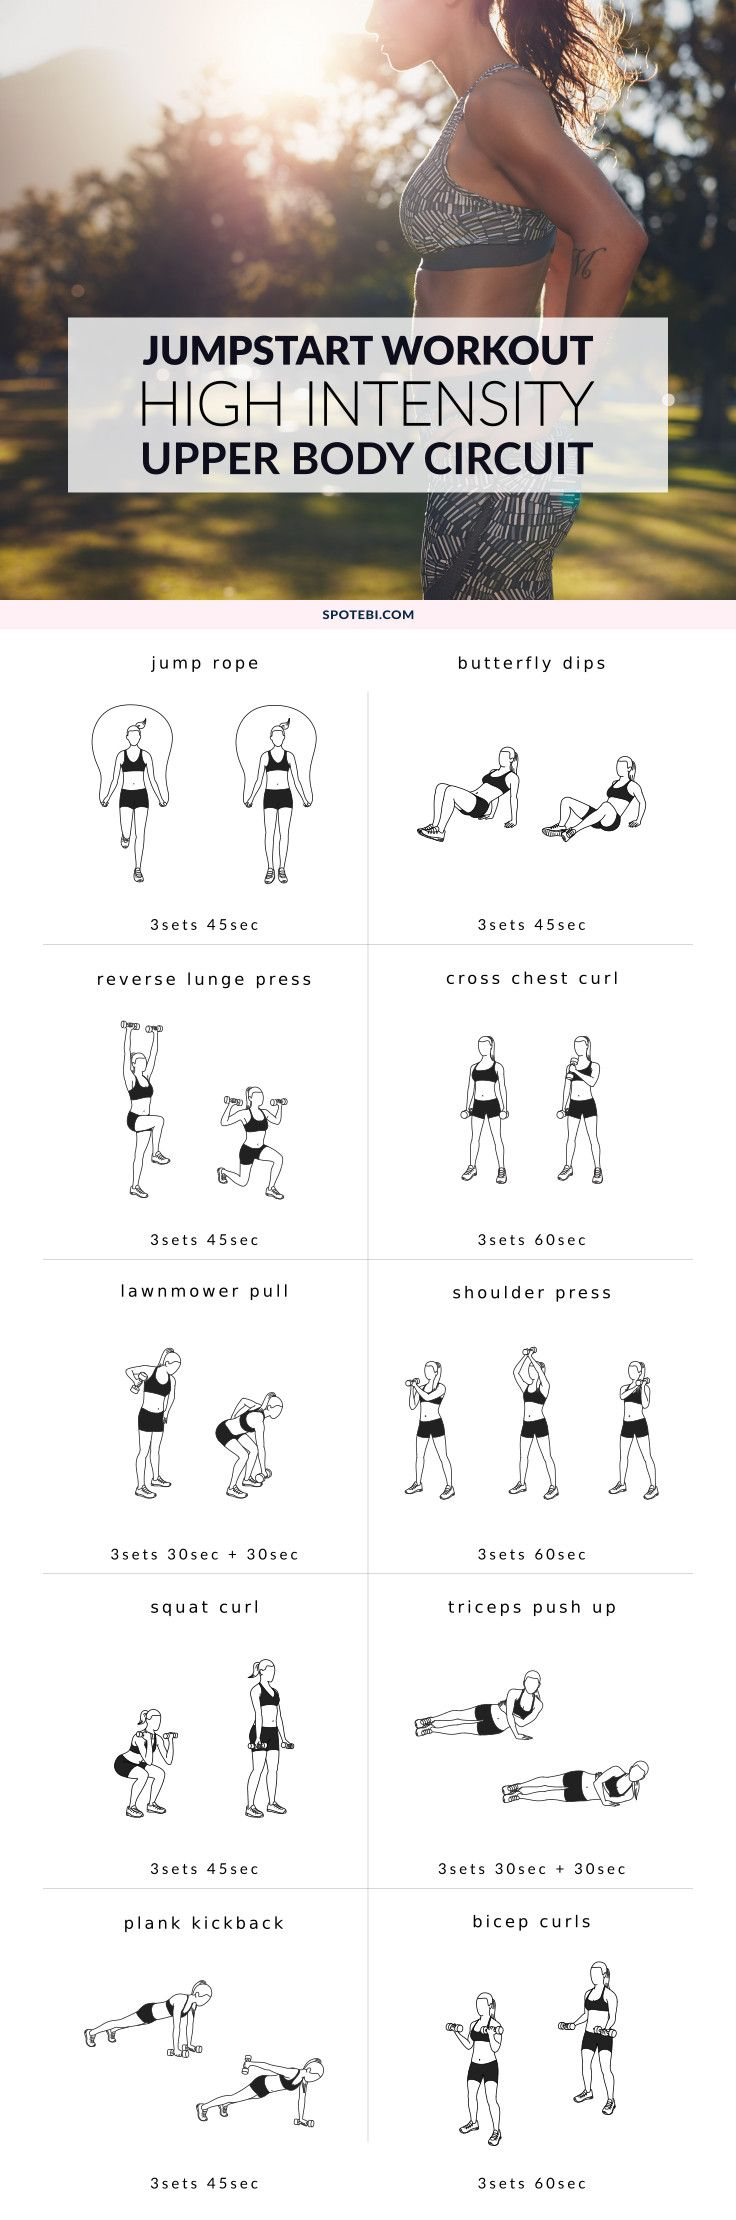 Jumpstart your weight loss and sculpt sleek, sexy arms and shoulders with this high-intensity upper body workout. A mix of cardio and strength training moves designed to burn off fat fast!